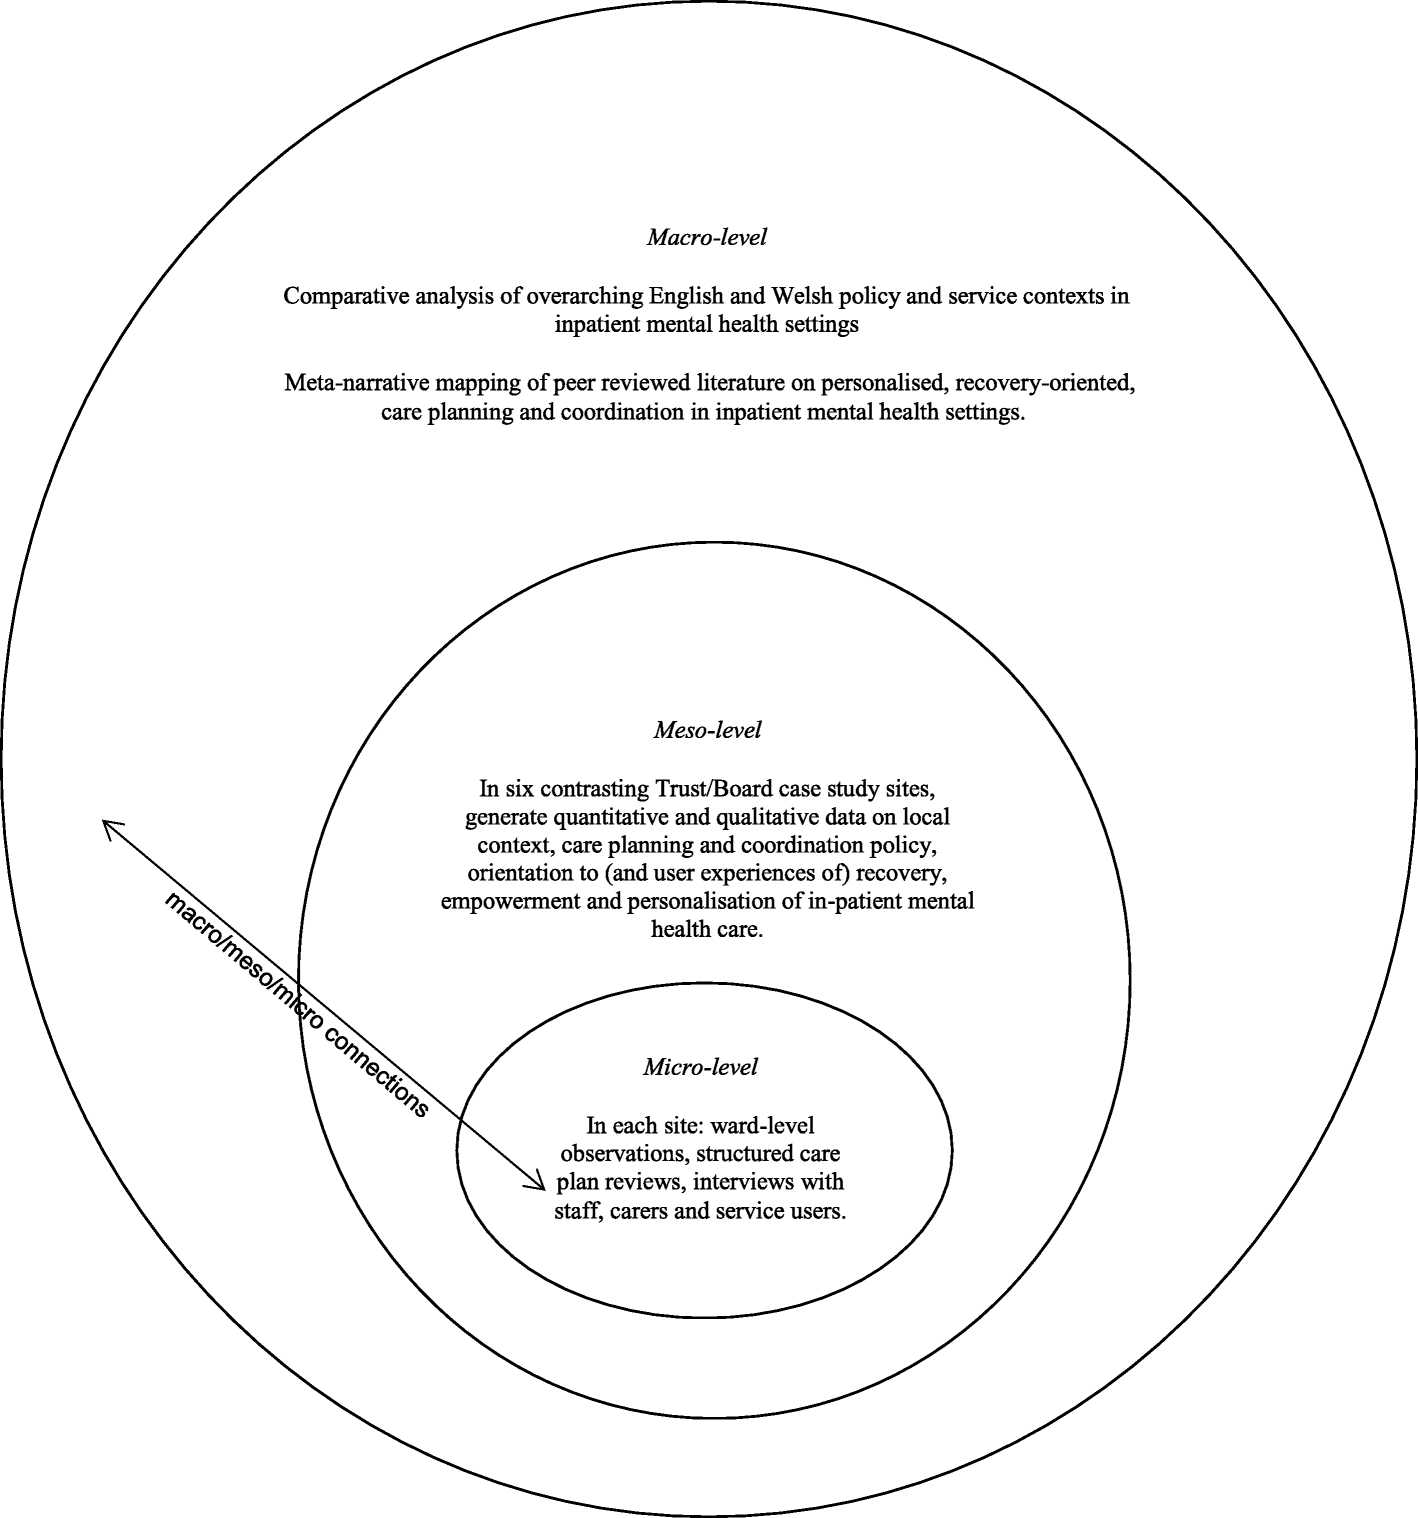 Recovery Focused Mental Health Care Planning And Co Ordination In Acute Inpatient Mental Health Settings A Cross National Comparative Mixed Methods Study Bmc Psychiatry Full Text